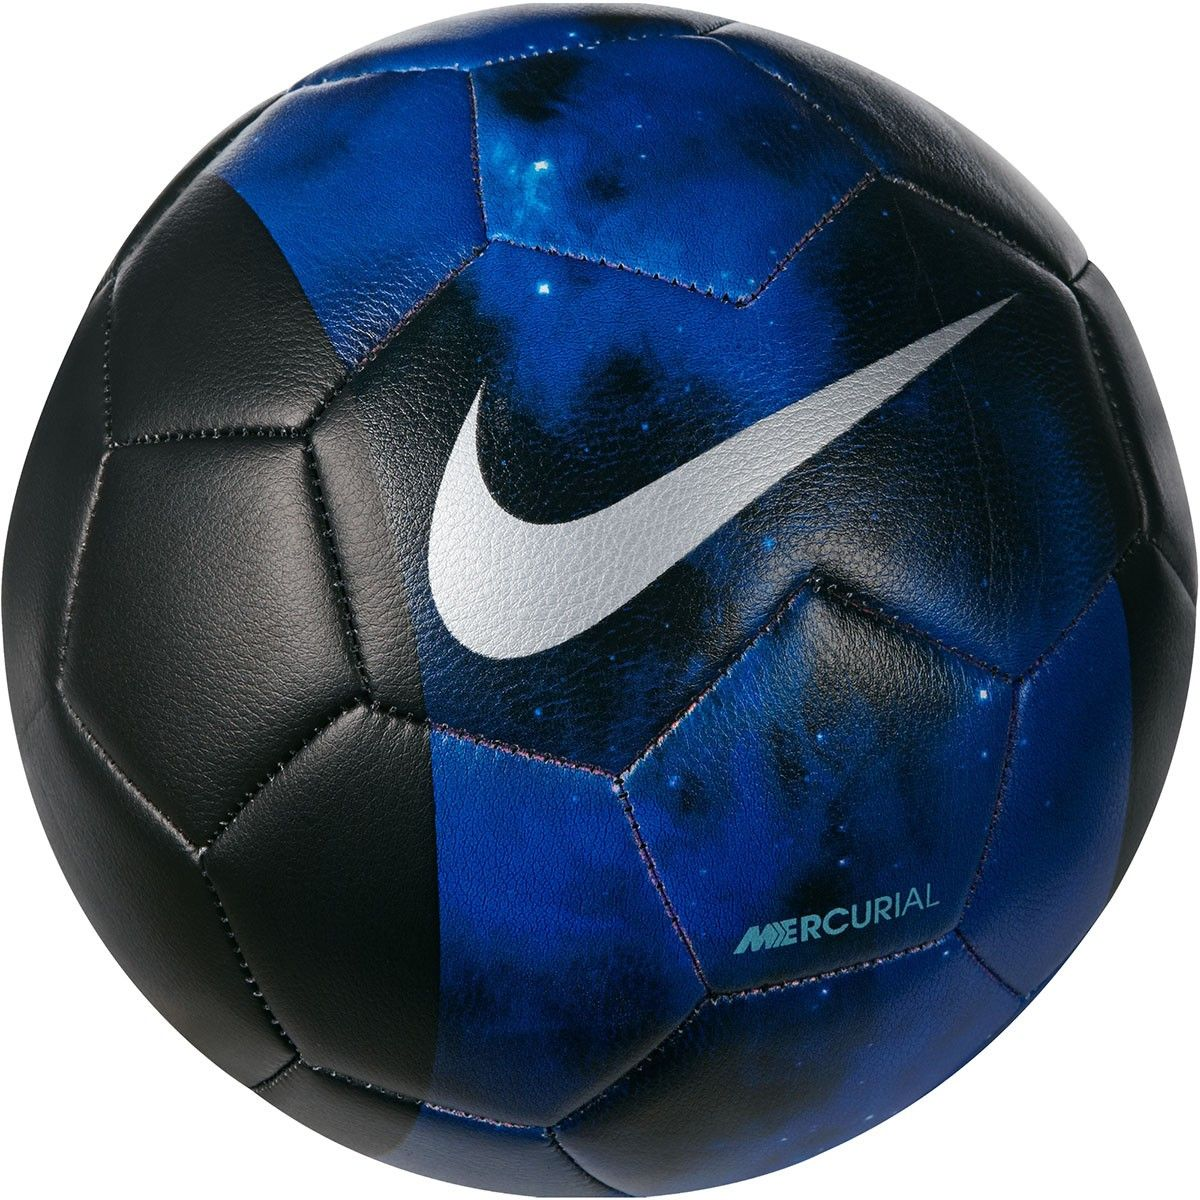 Blue Nike Soccer Ball Hd Images 3 HD Wallpapers | Sports ...